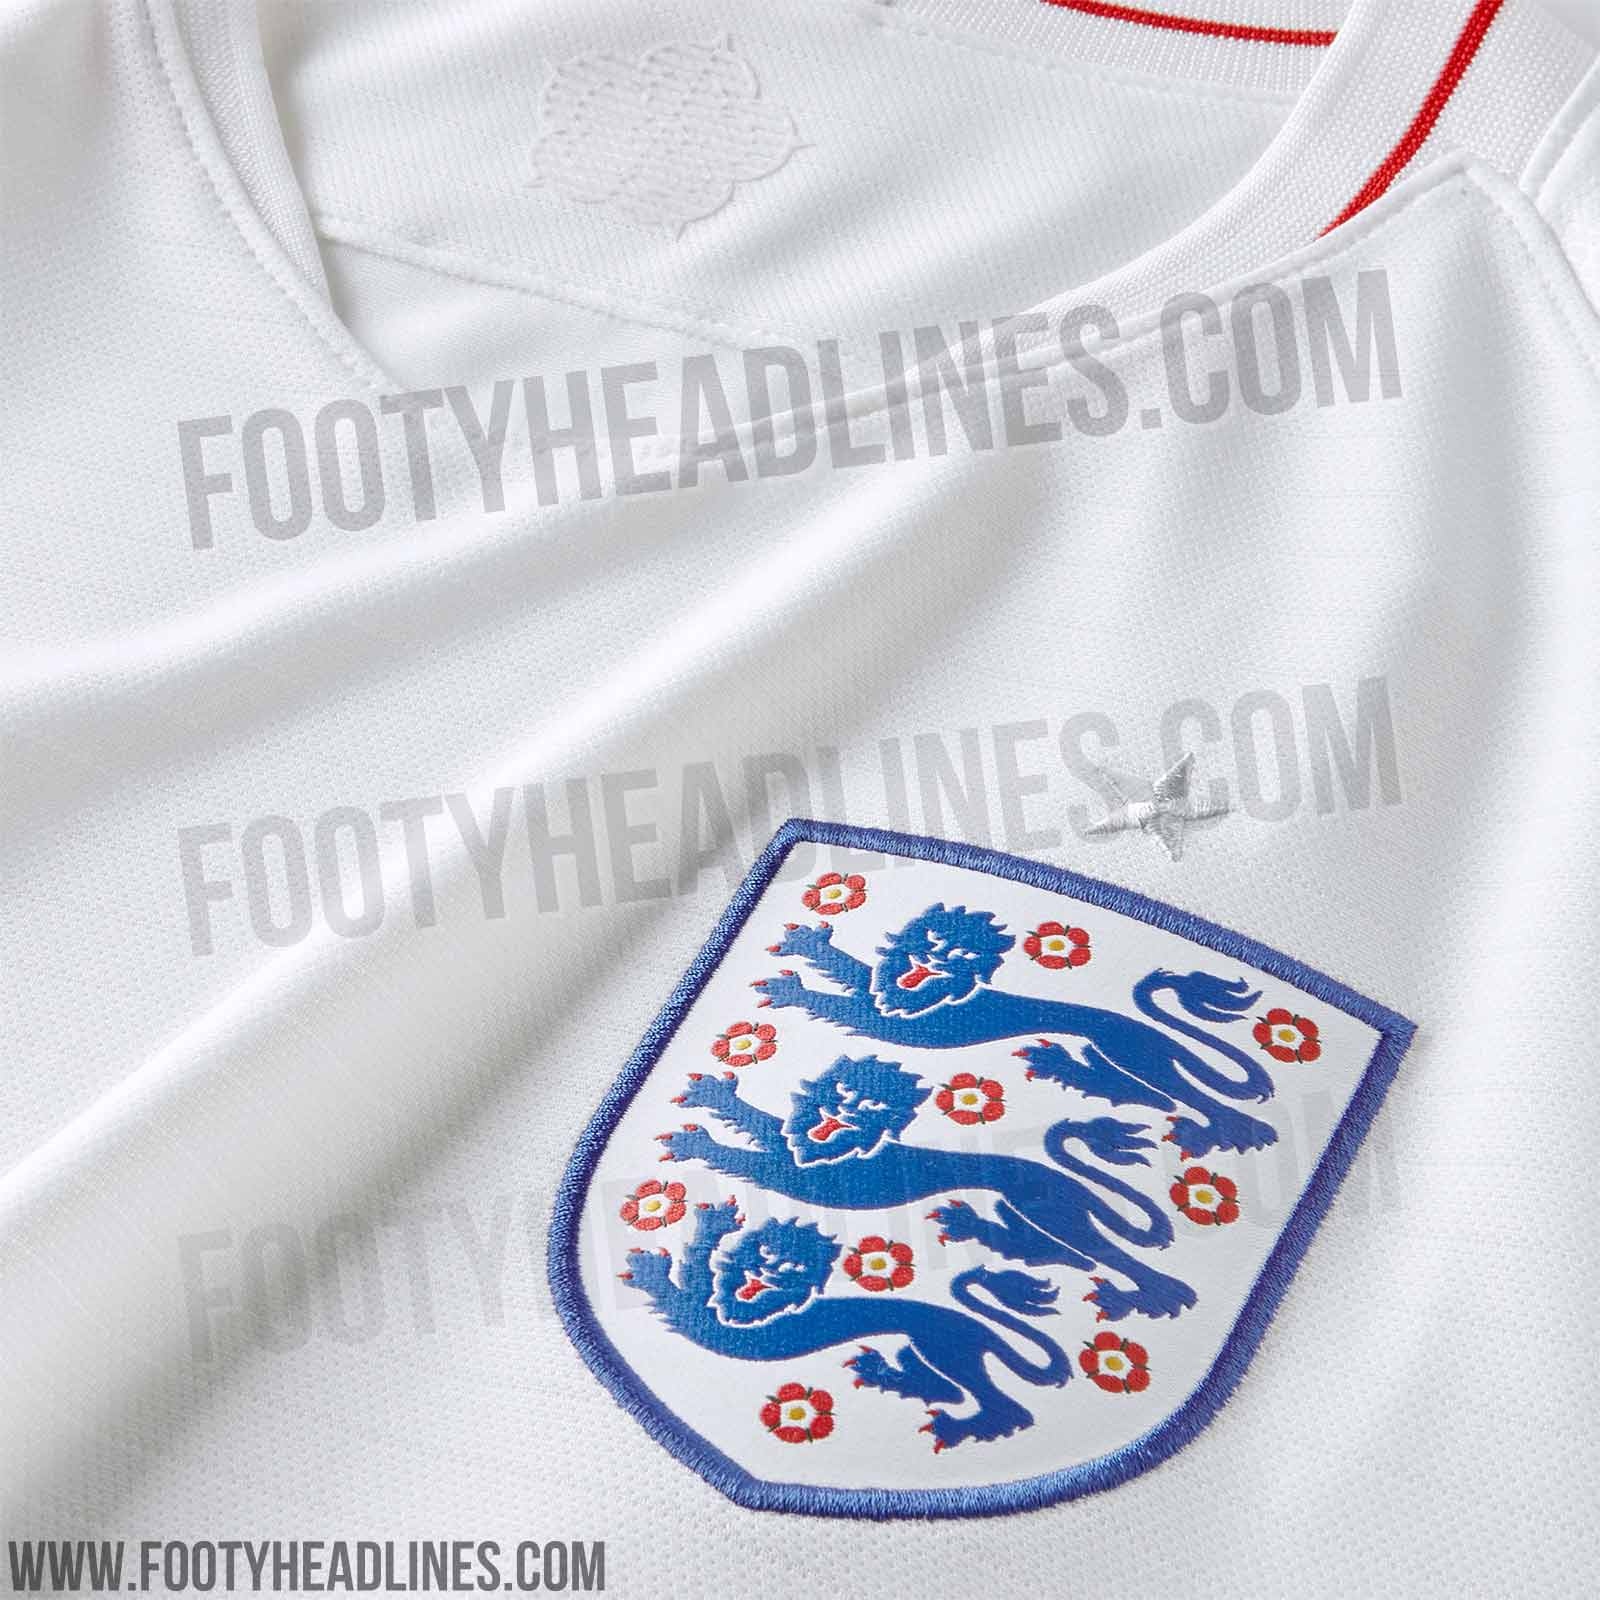 Best England Kit World Cup 2018 - england-2018-world-cup-home-kit-4  Photograph_843855 .jpg